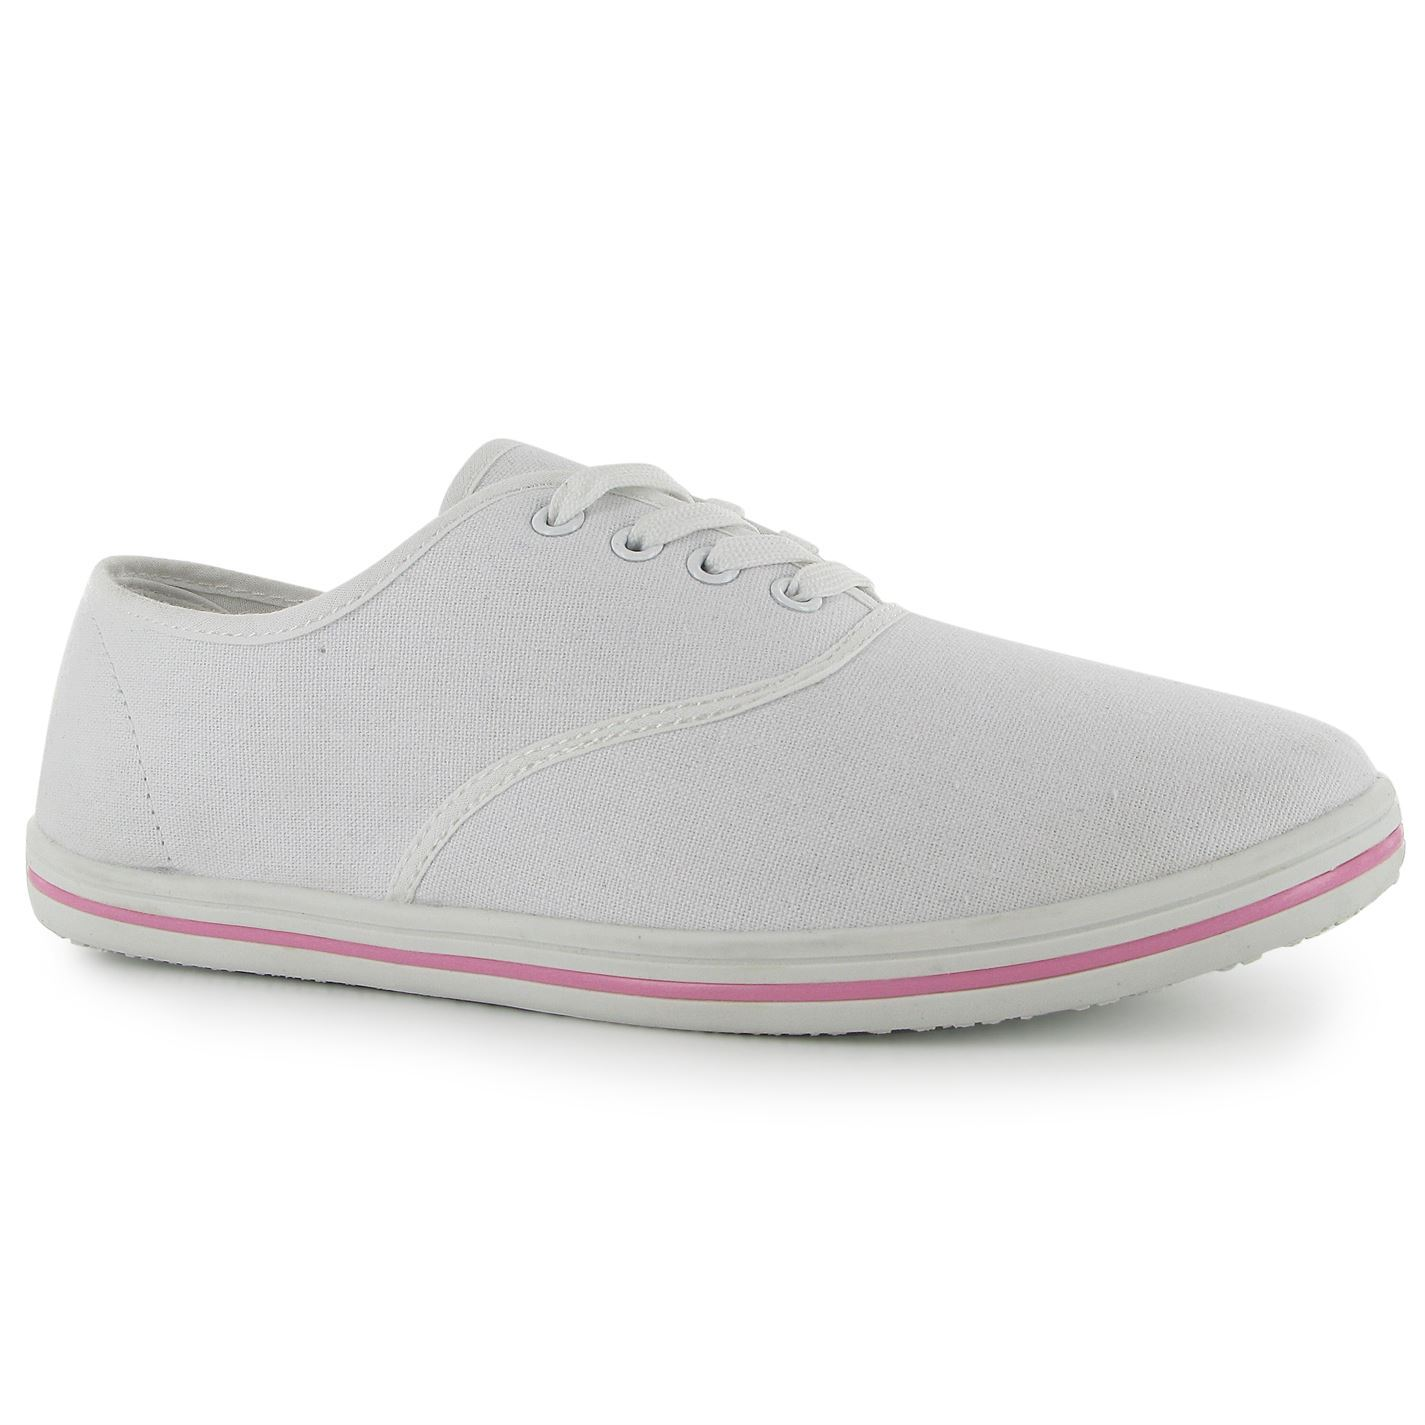 Details about Slazenger Womens Ladies Canvas Pumps Lace Up Shoes  Lightweight Casual Footwear 65bdc7e9d